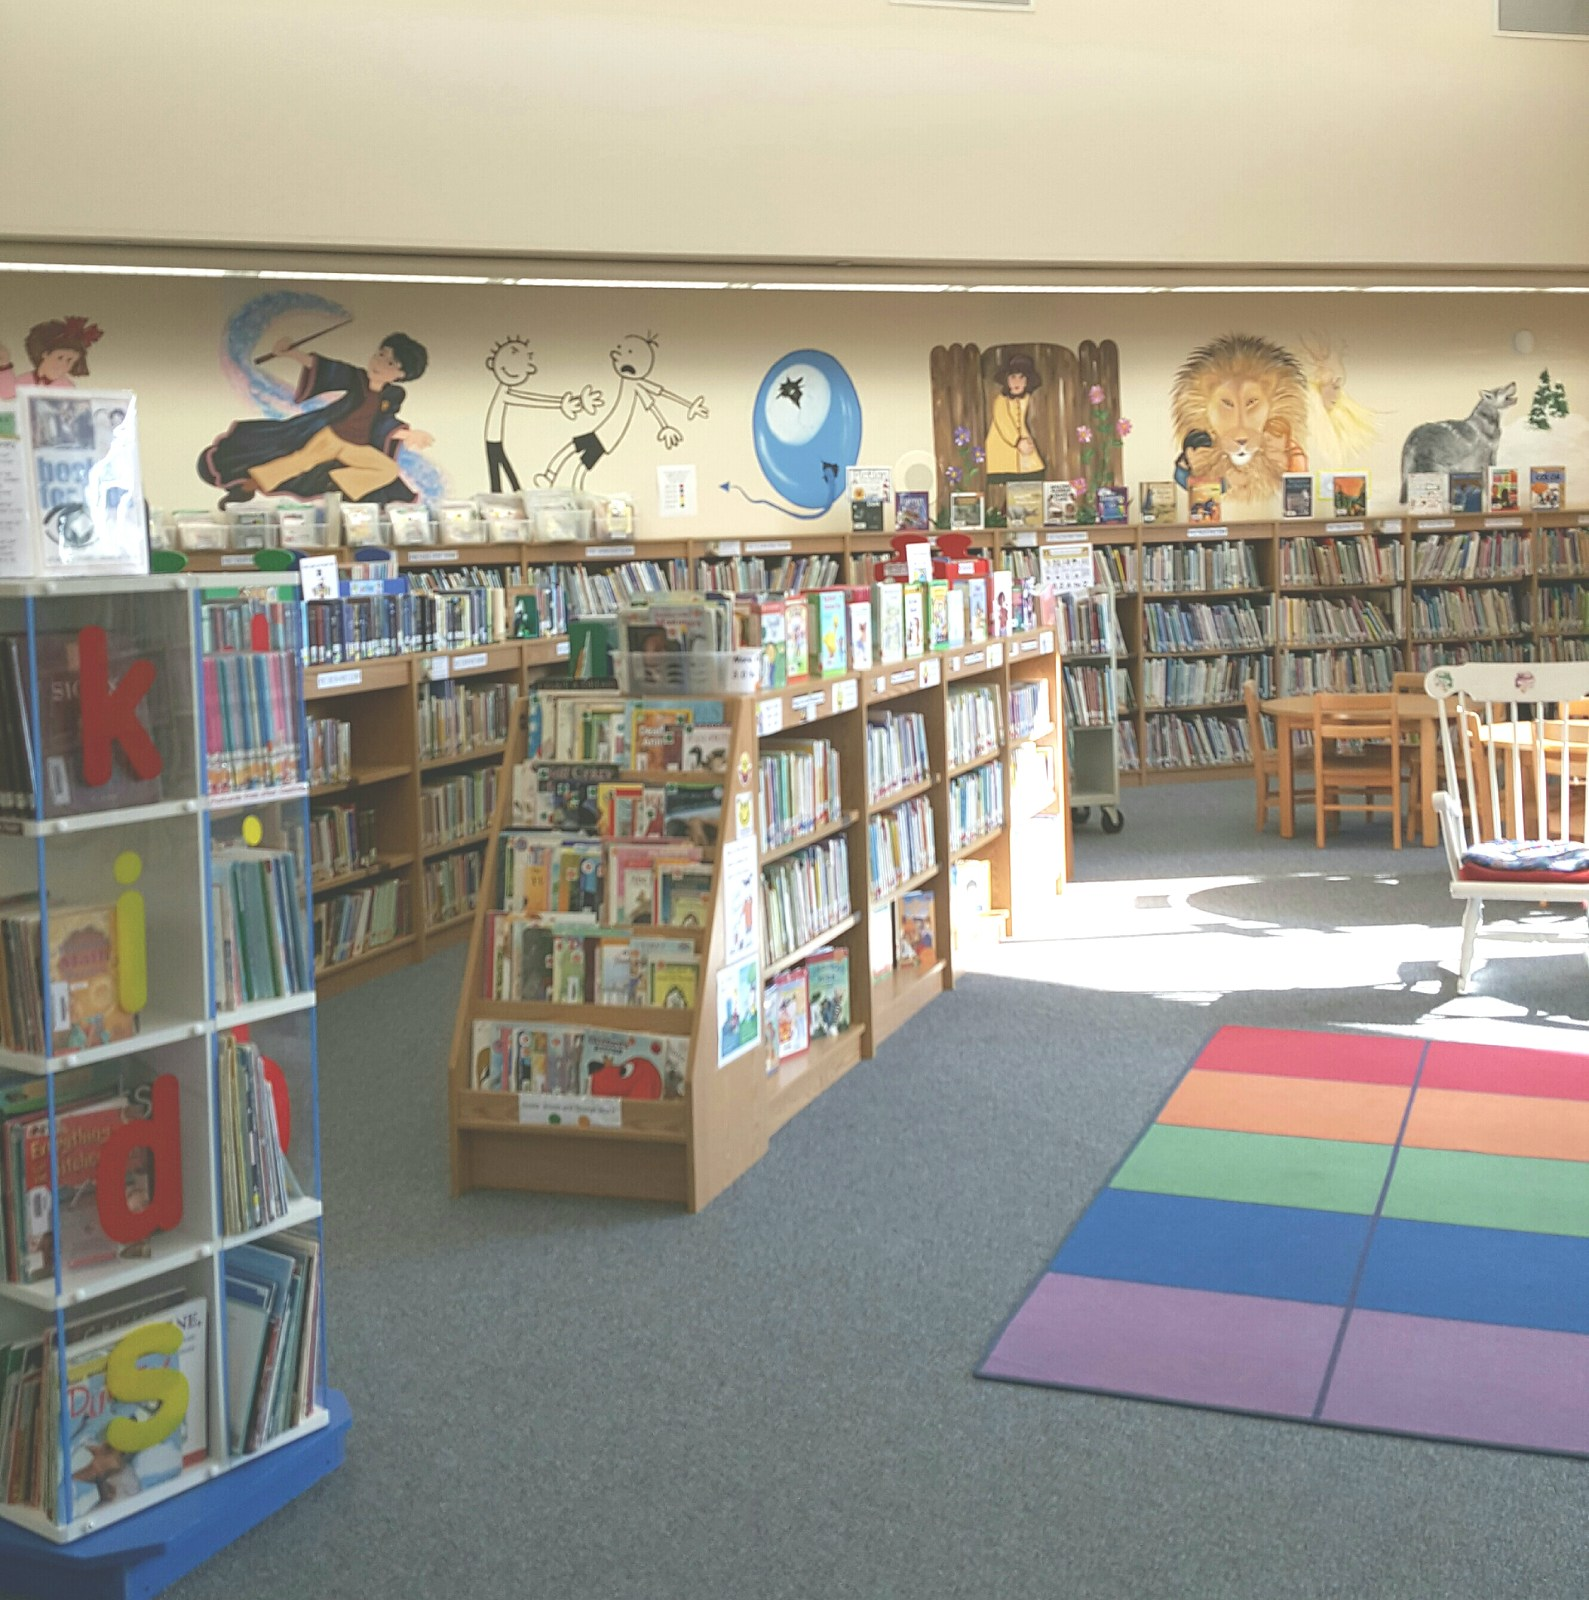 books on shelves and colorful carpet on floor